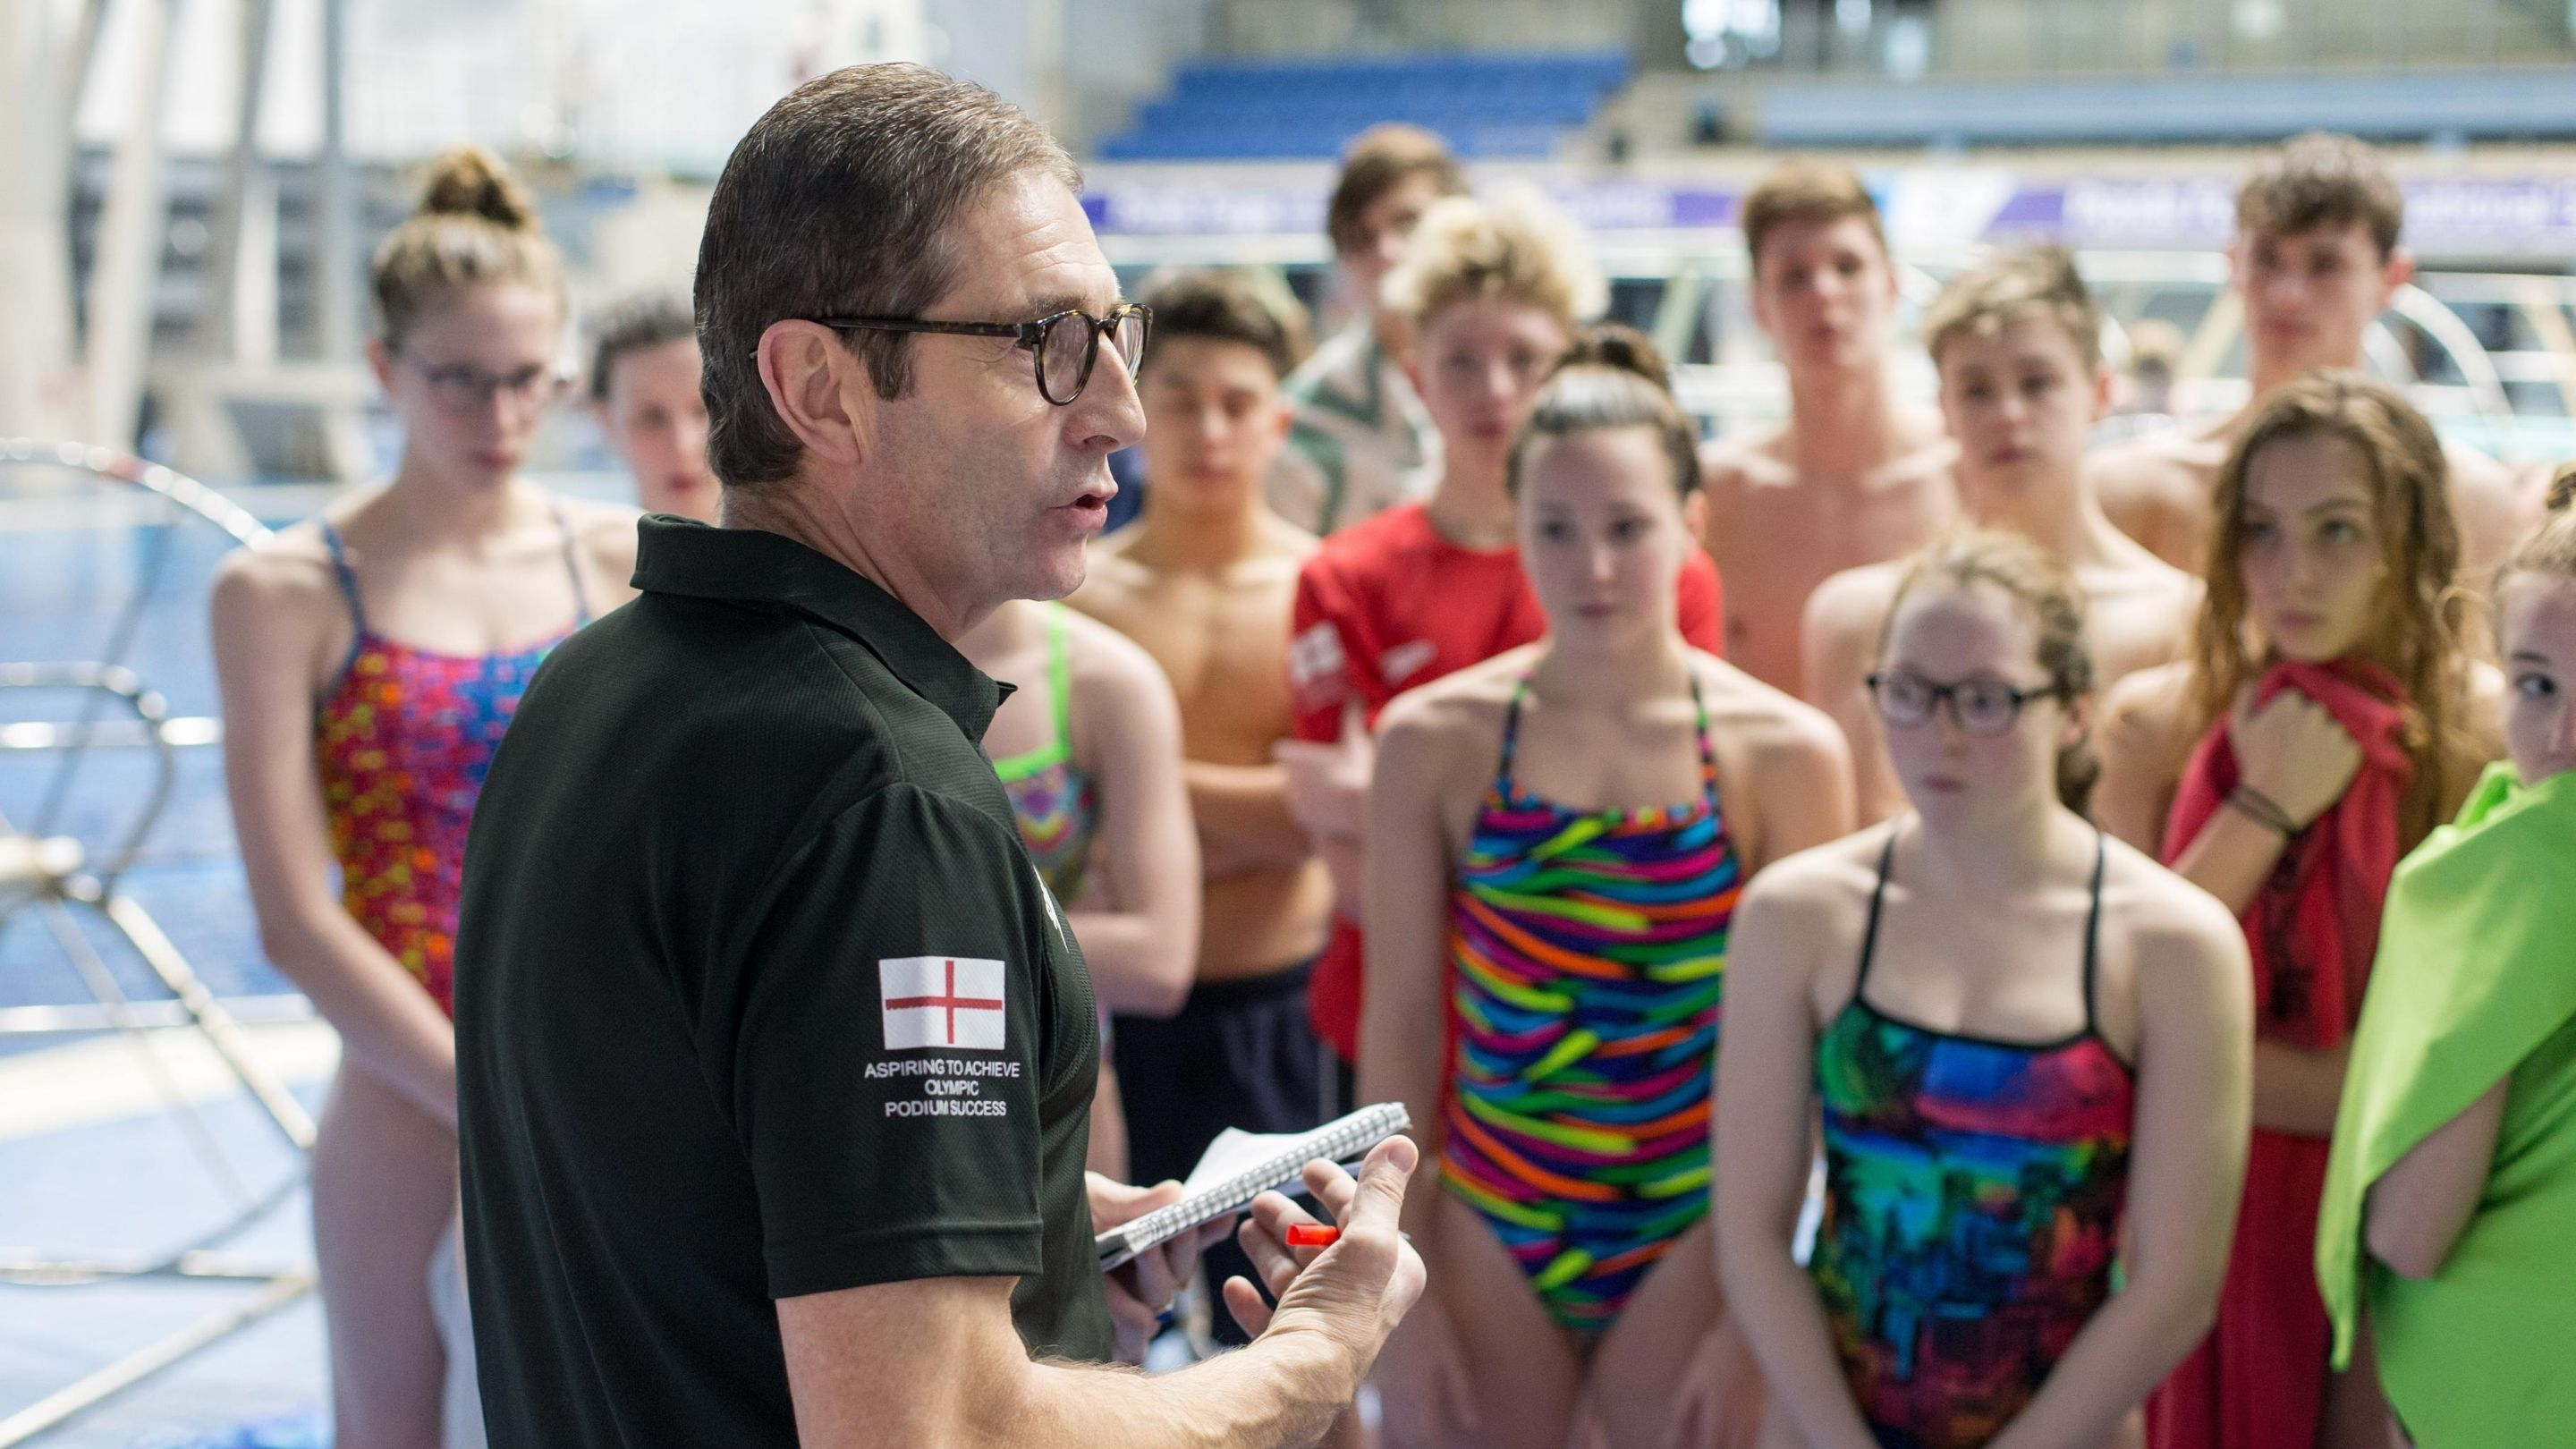 Swim England Senior Swimming Coach